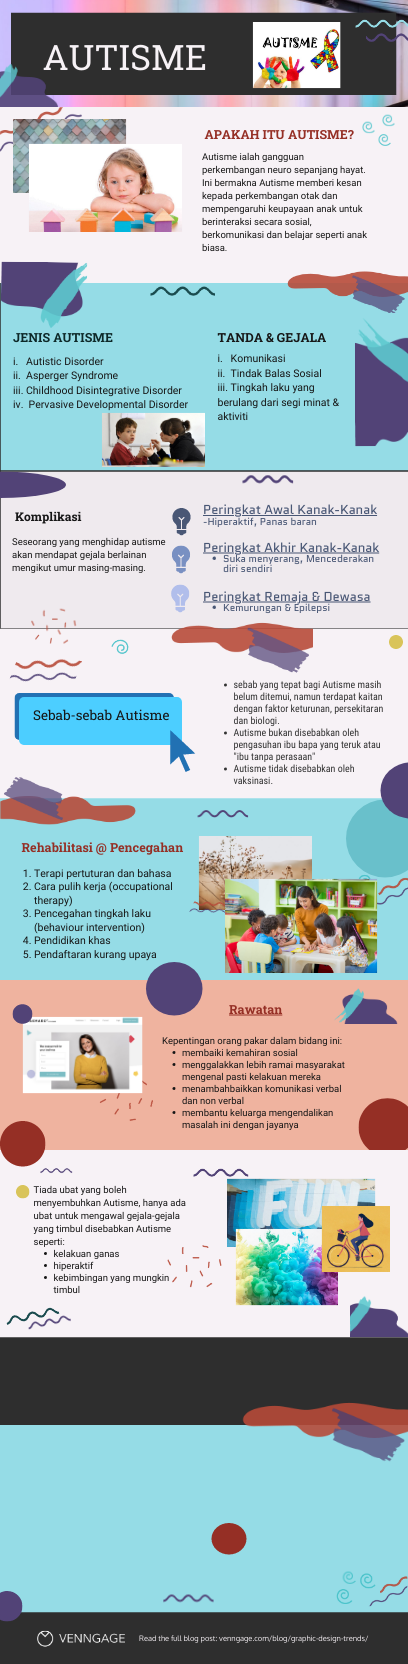 Click On The Image To View The High Definition Version Create Infographics At Http Vennga How To Create Infographics Free Infographic Maker Free Infographic